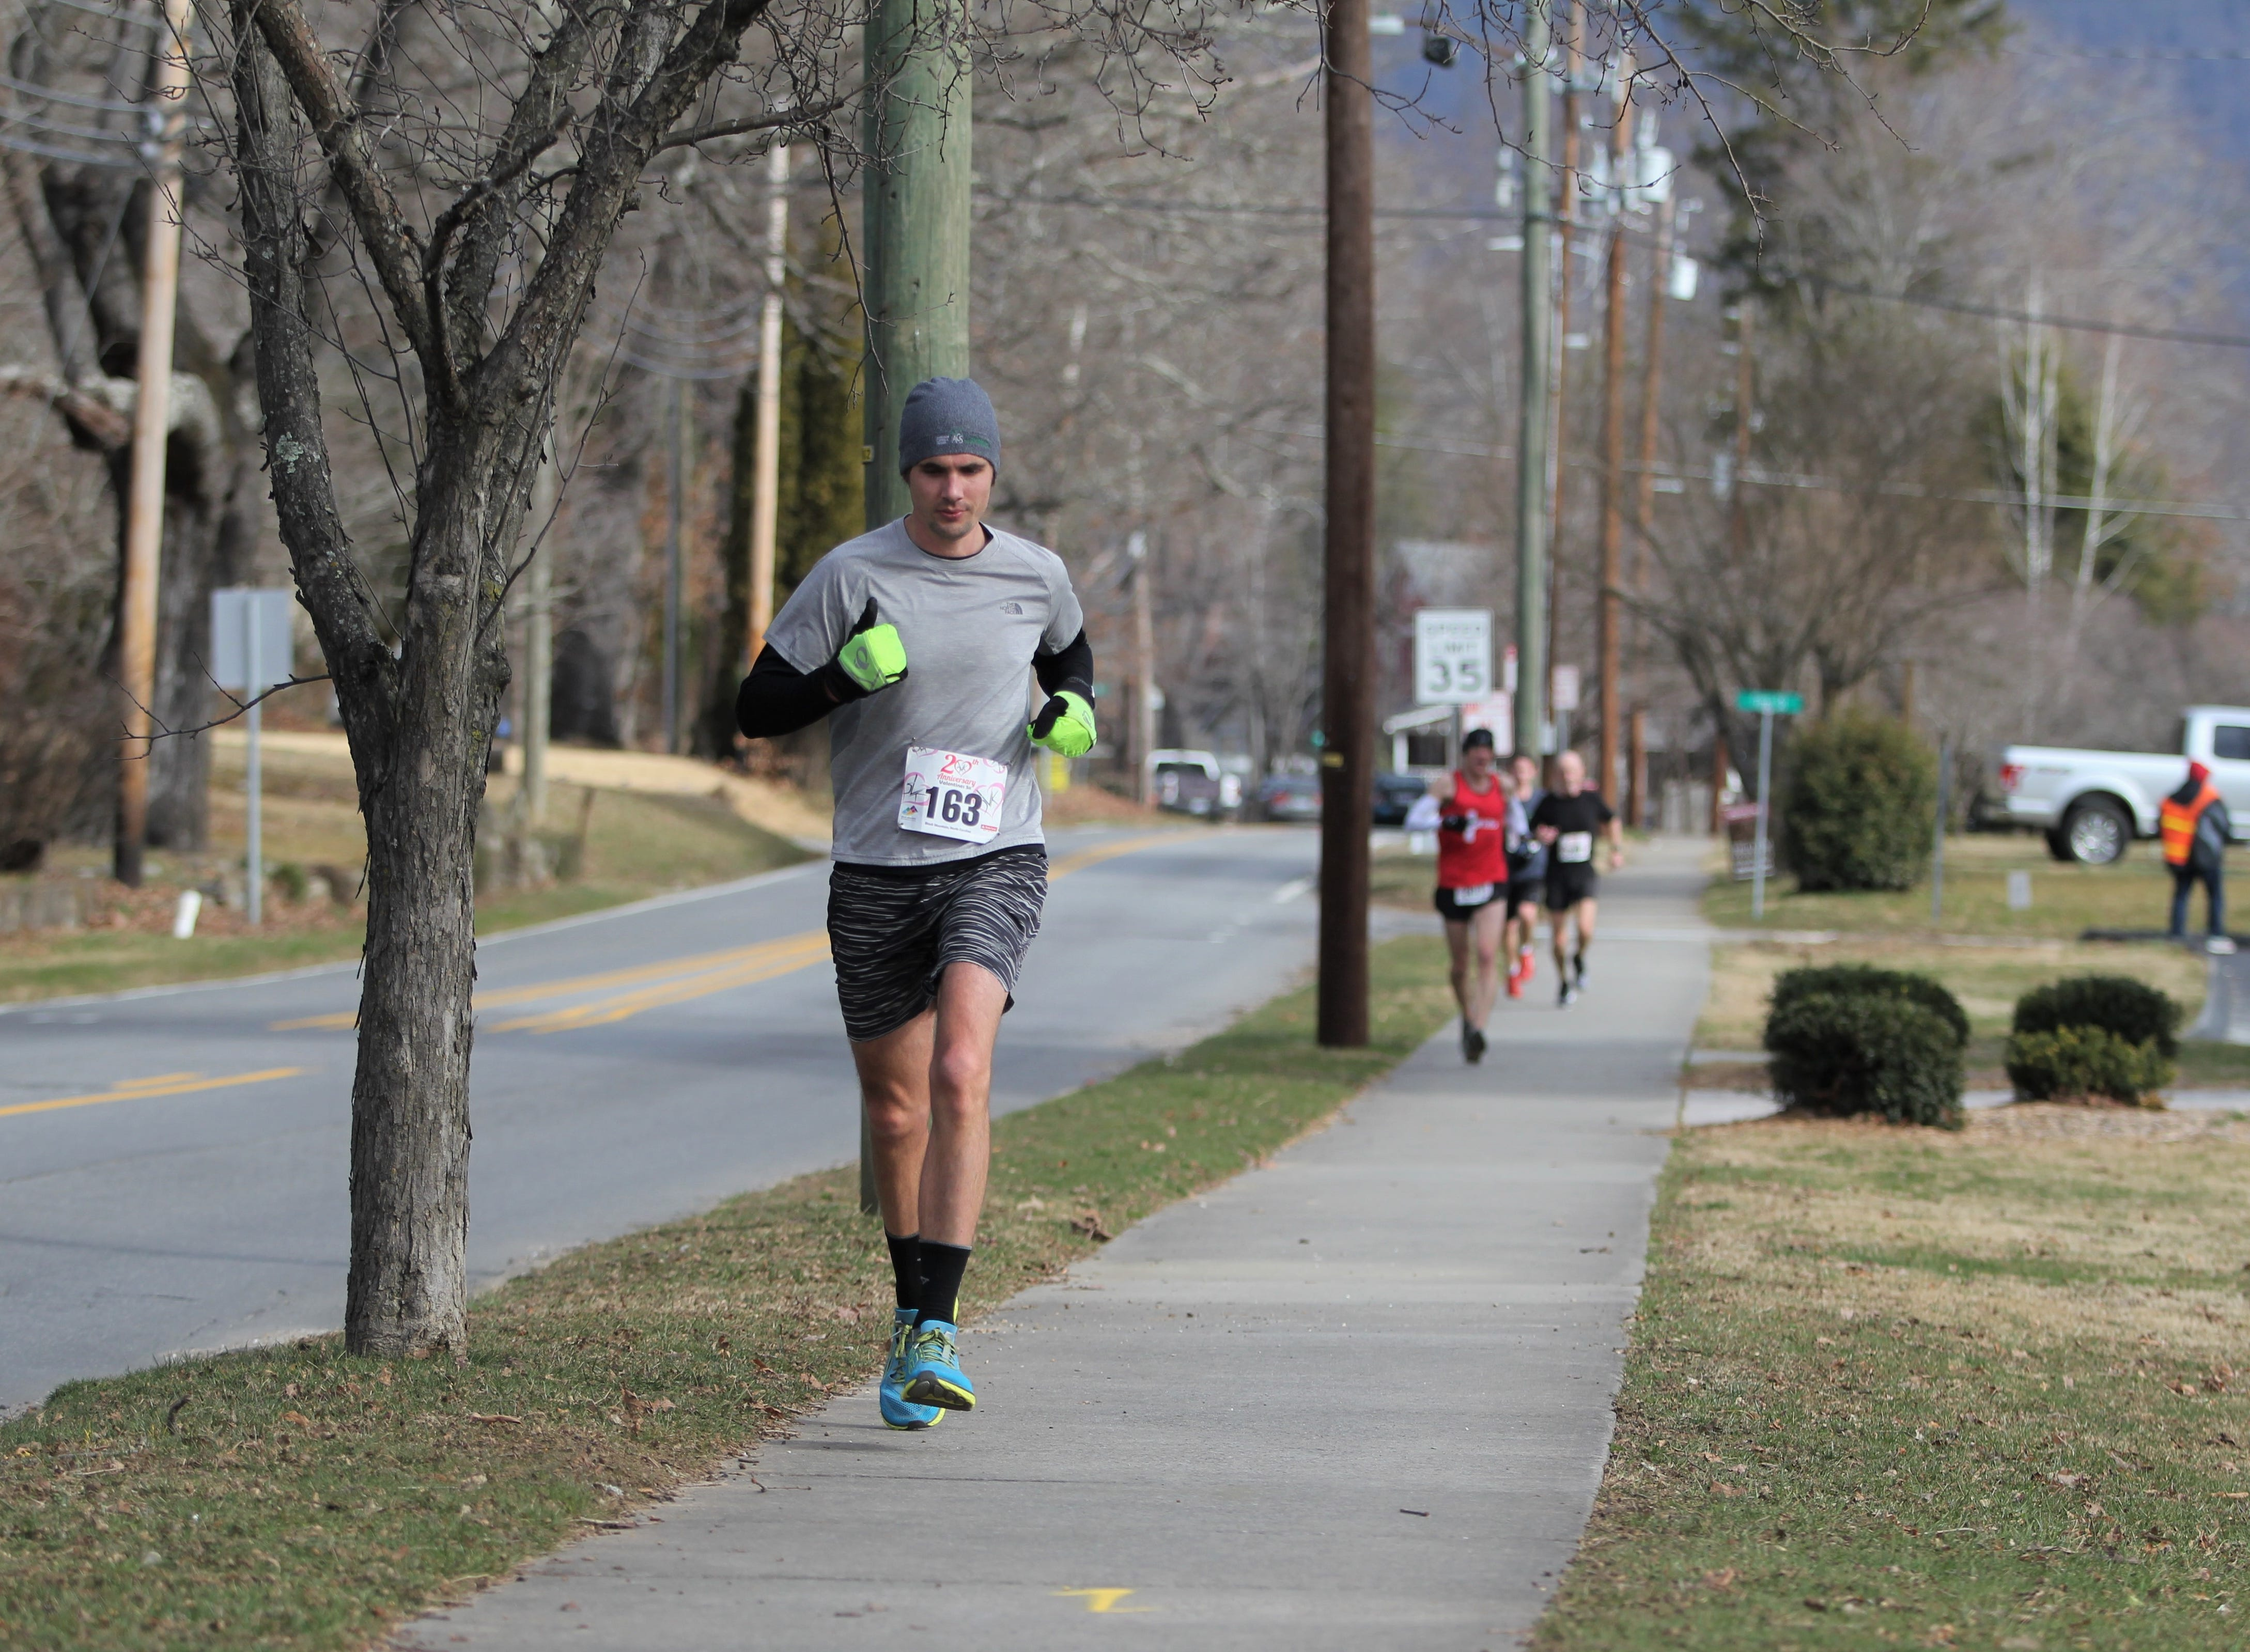 Hundreds of runners gathered at Lake Tomahawk for the 20th annual Valentine 5K & Kids Fun Run. The event is hosted by the Town of Black Mountain Recreation and Parks Department, and takes participants along two of the town's greenways. This year's top finisher was David Short, of Asheville, who finished in 18:42.8. The top female finisher was Valerie Gortmaker, also out of Asheville.